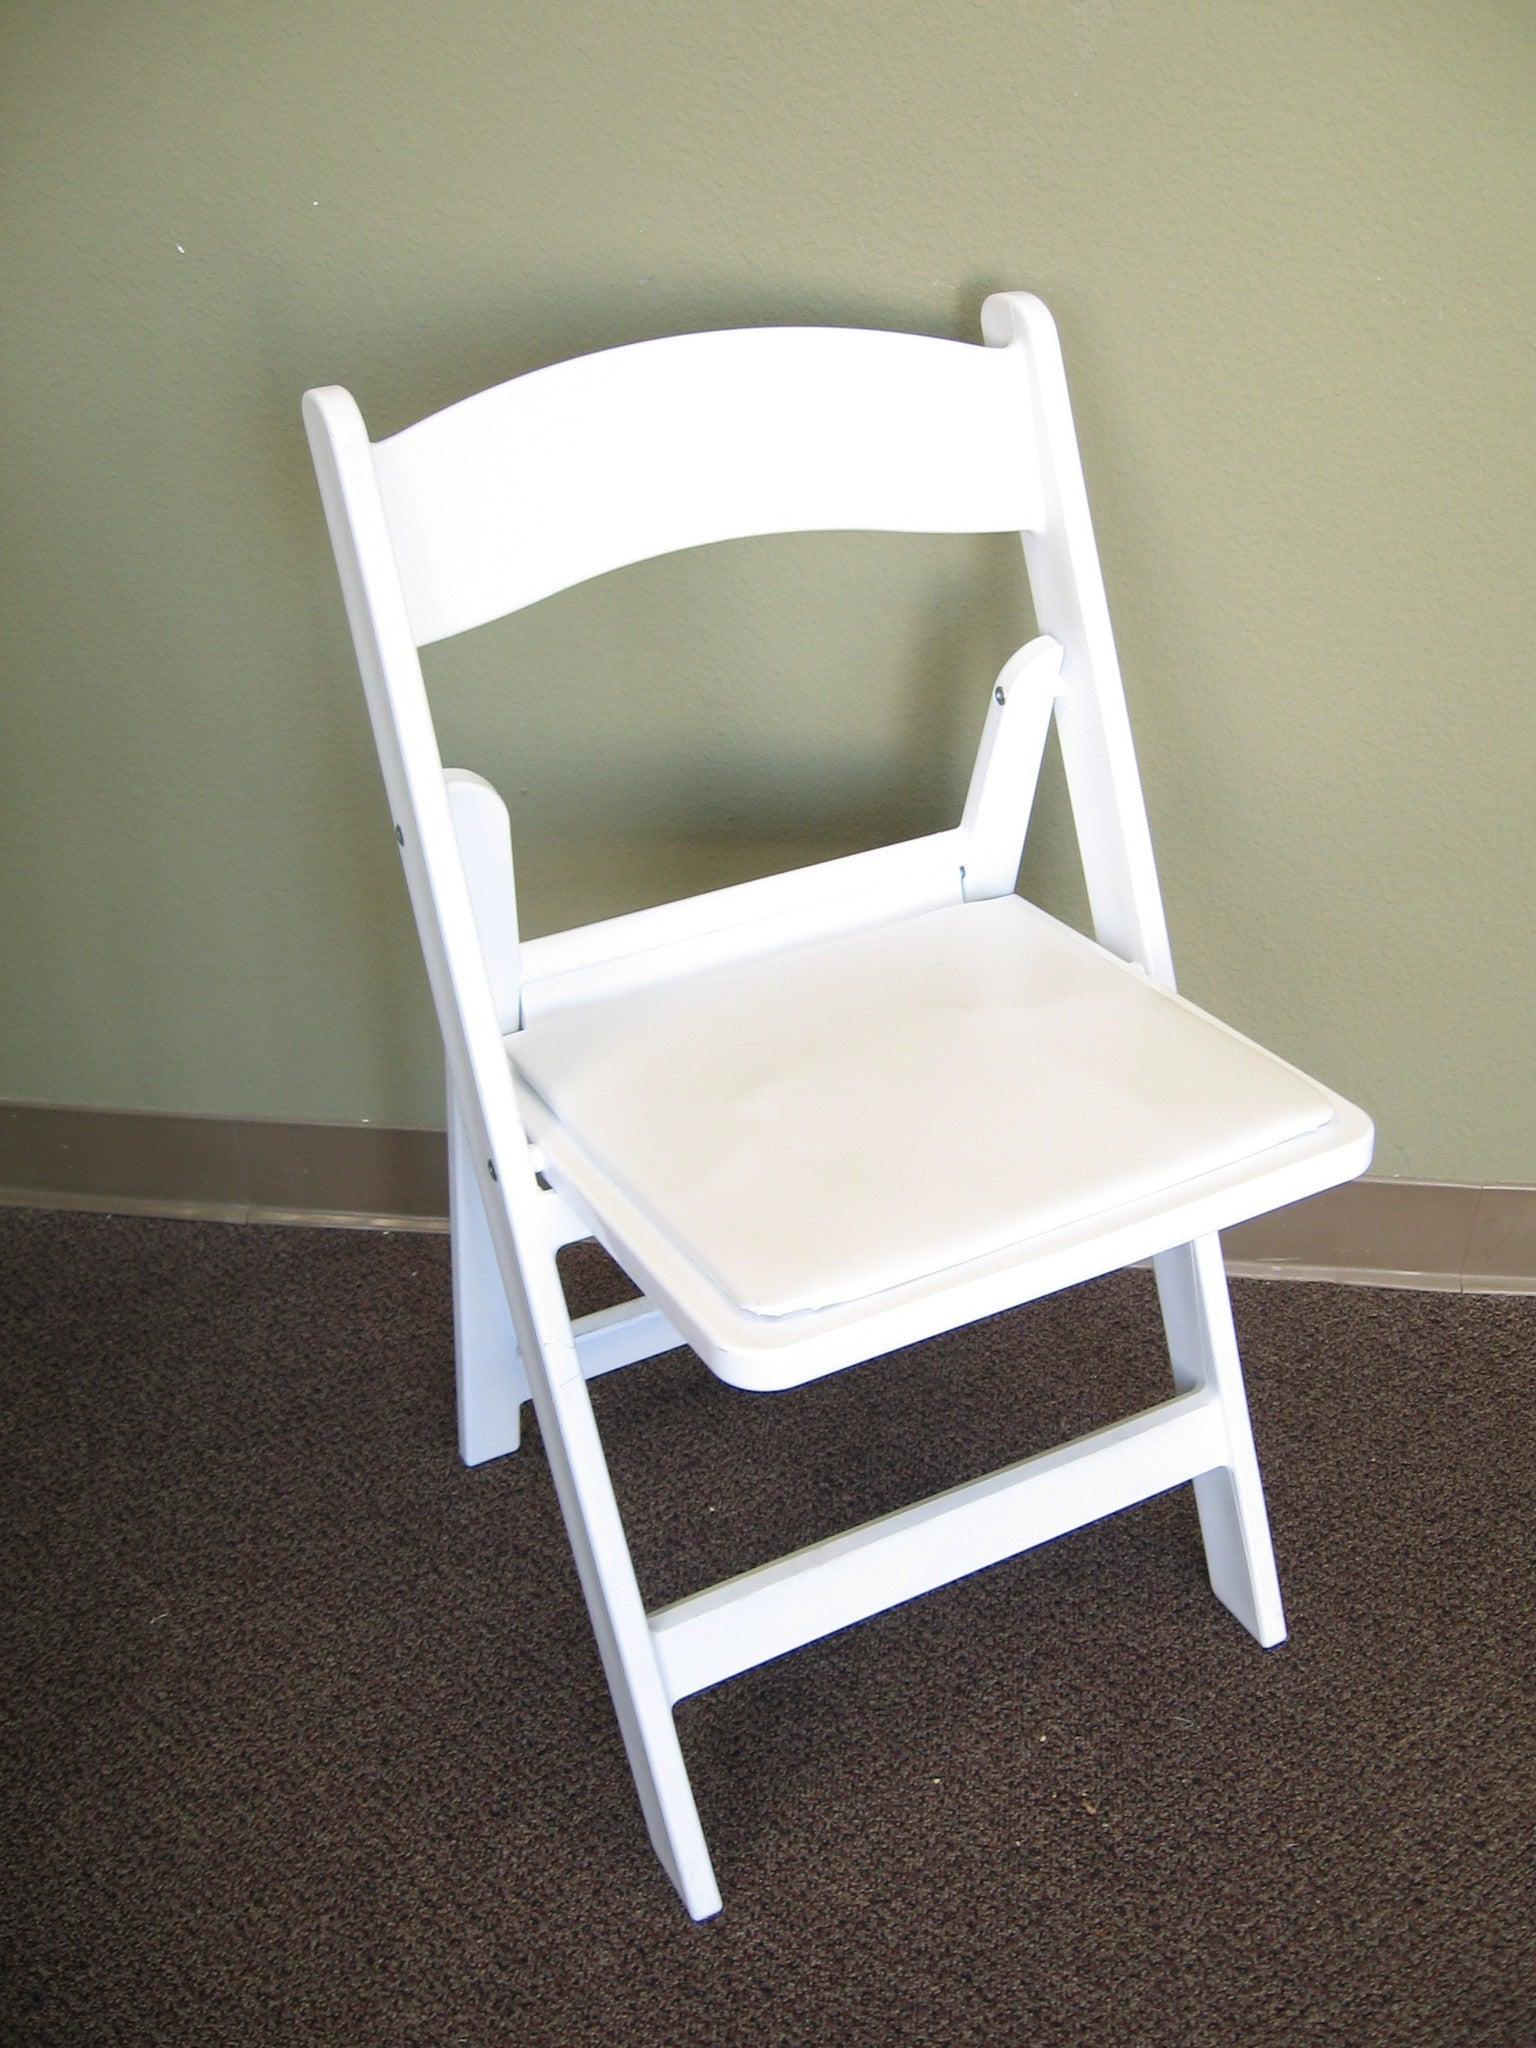 White fort Folding Chair for Rent